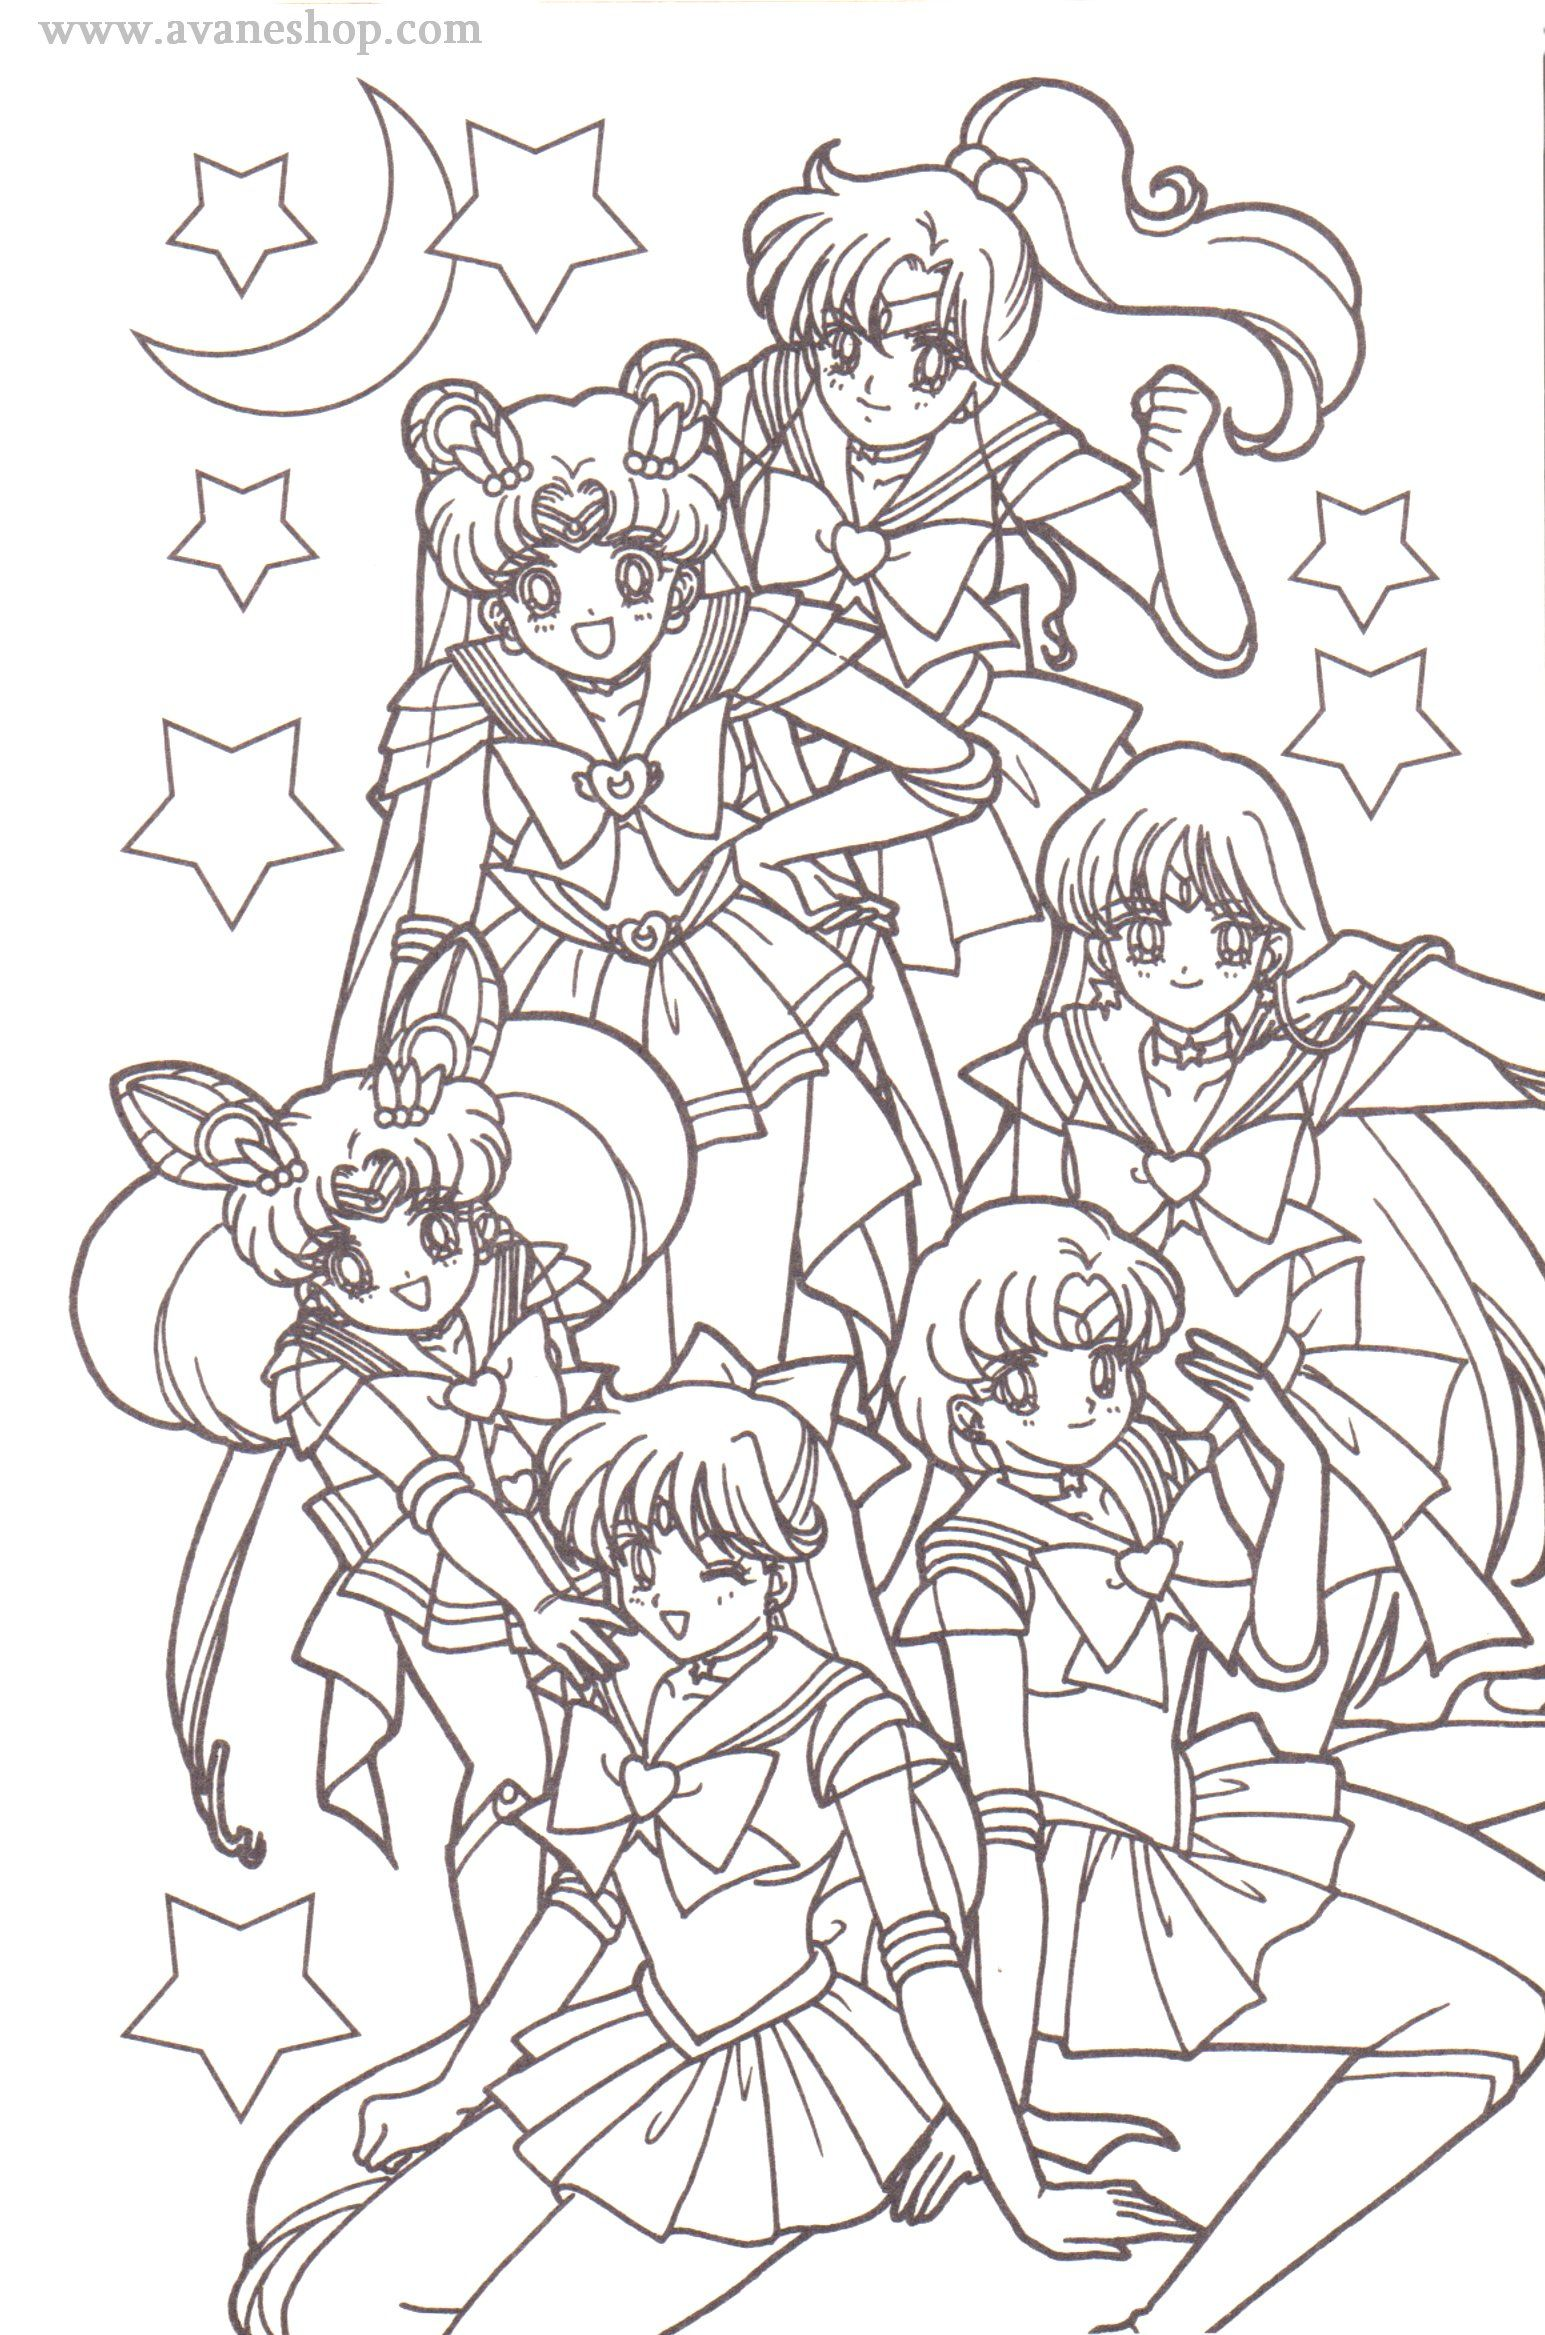 sailor moon coloring pages for 2019 http://www